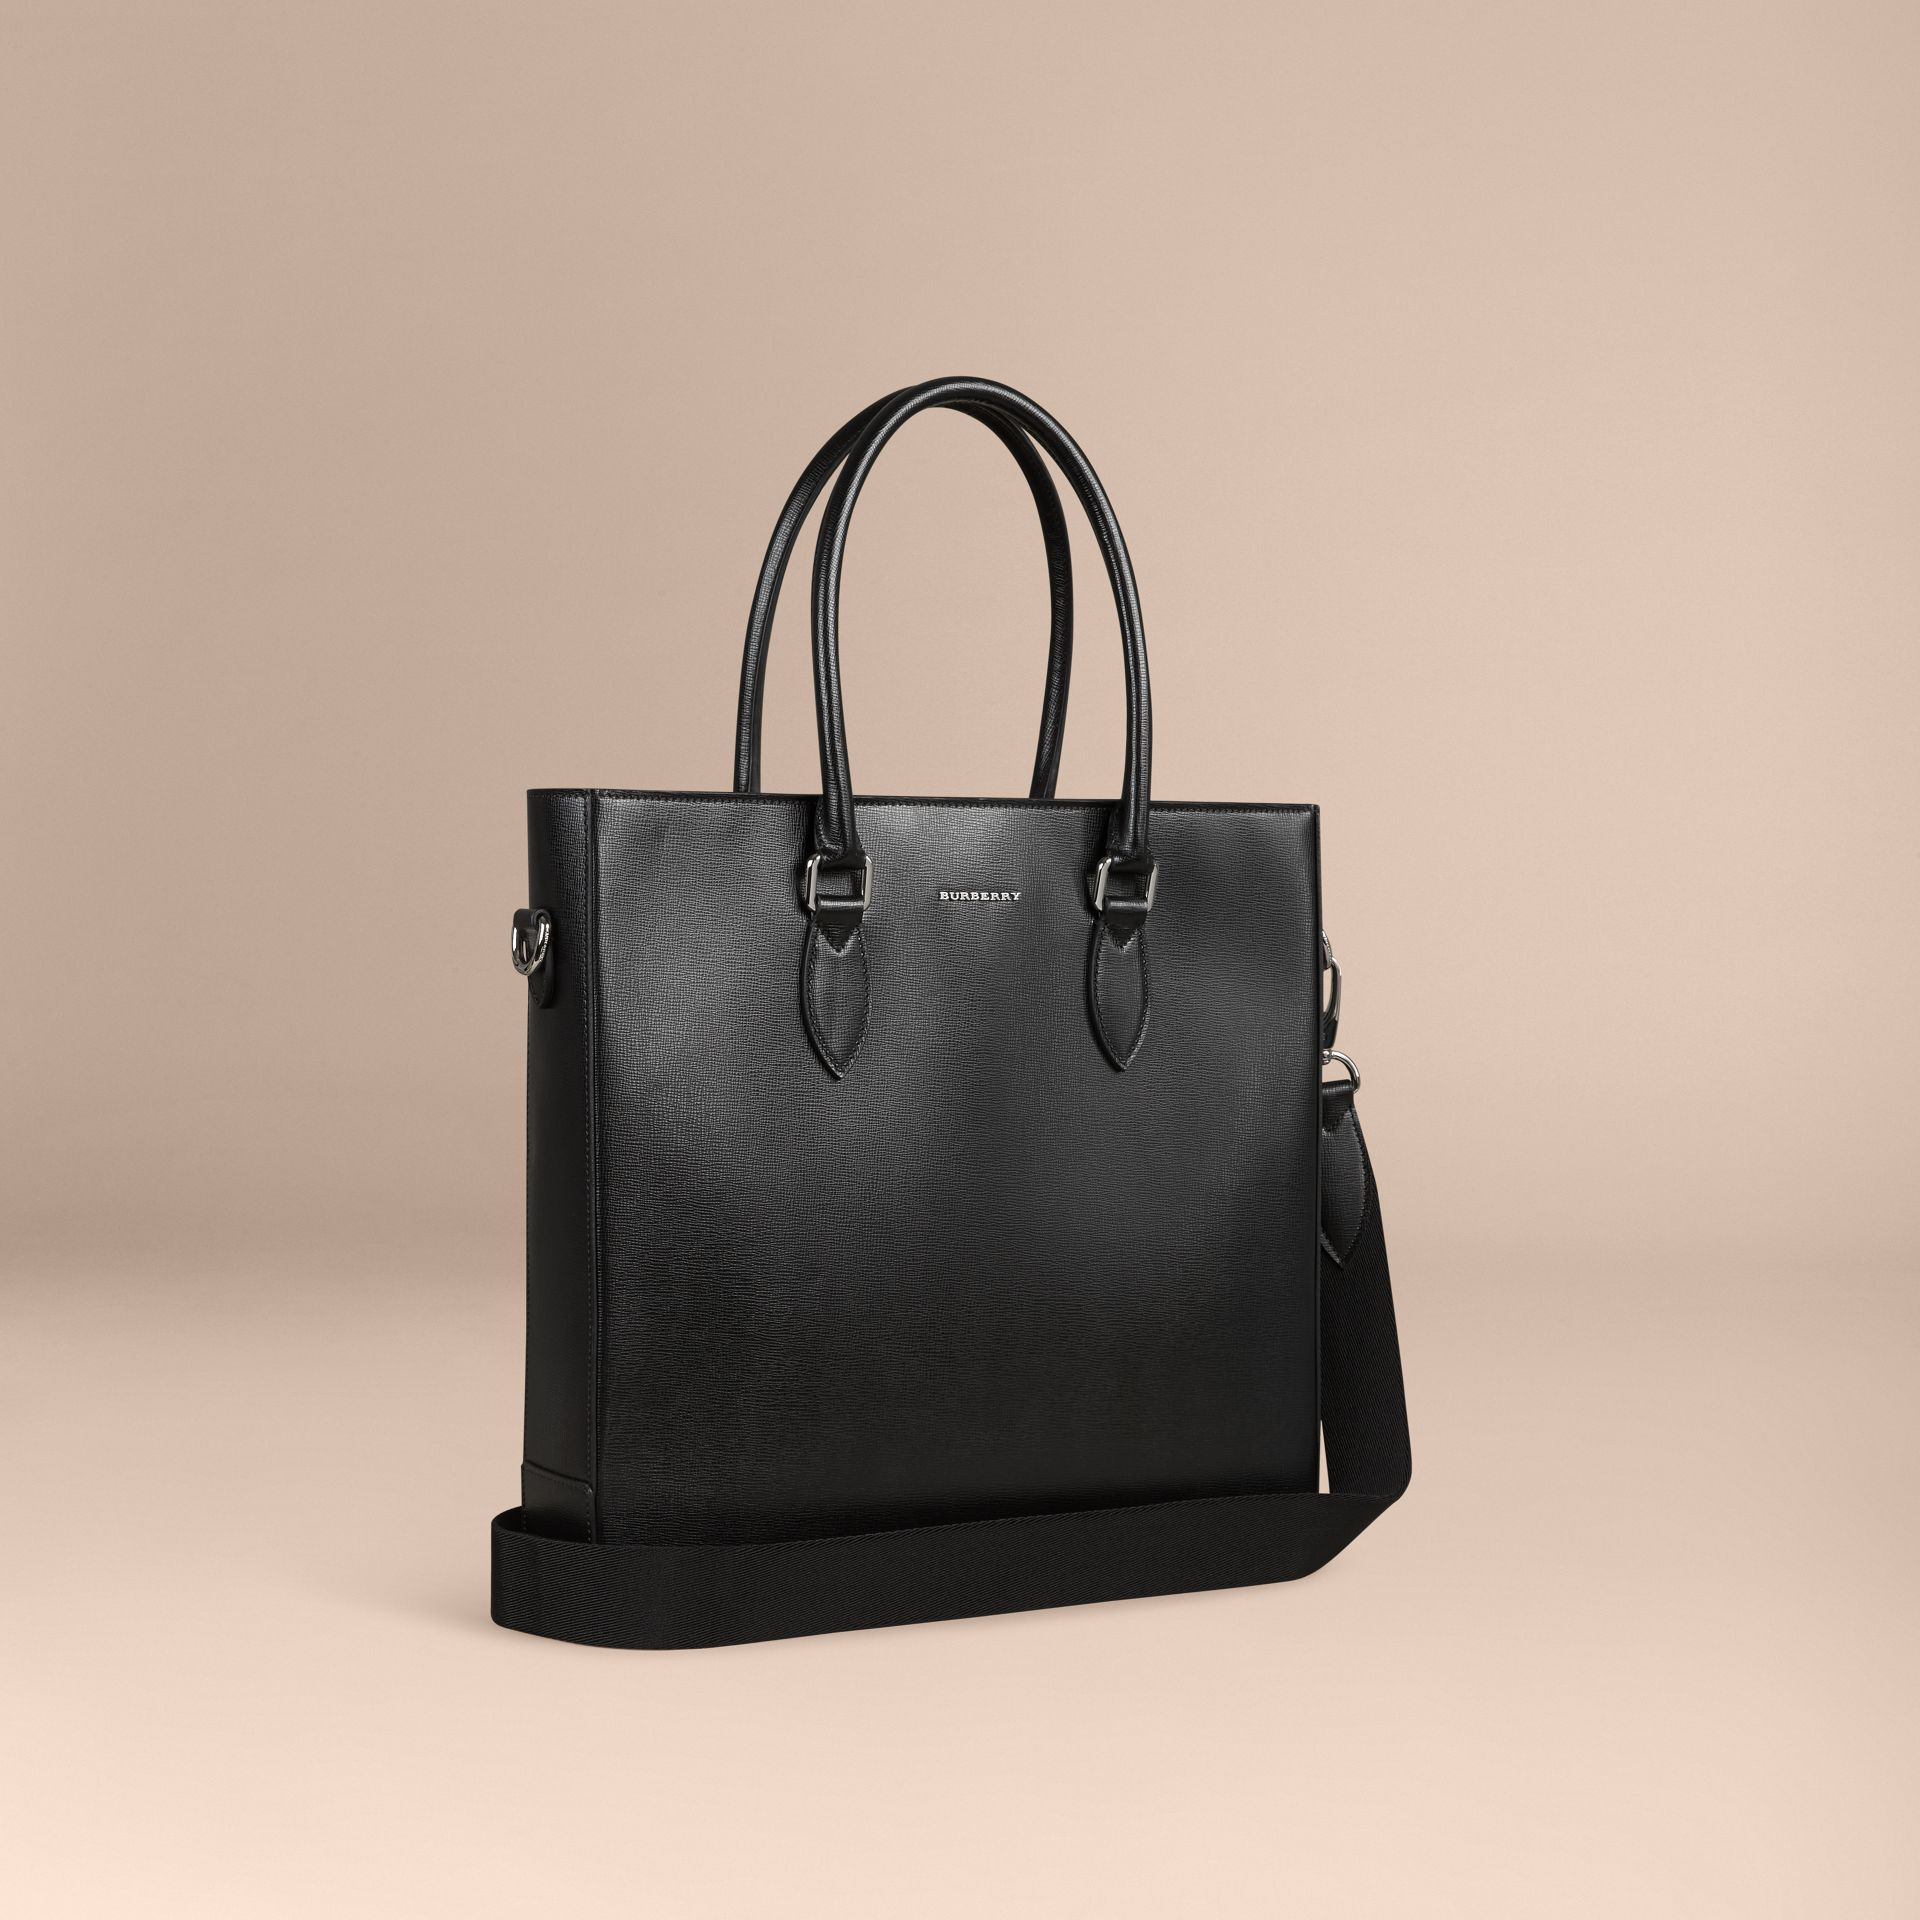 London Leather Tote Bag in Black - gallery image 1